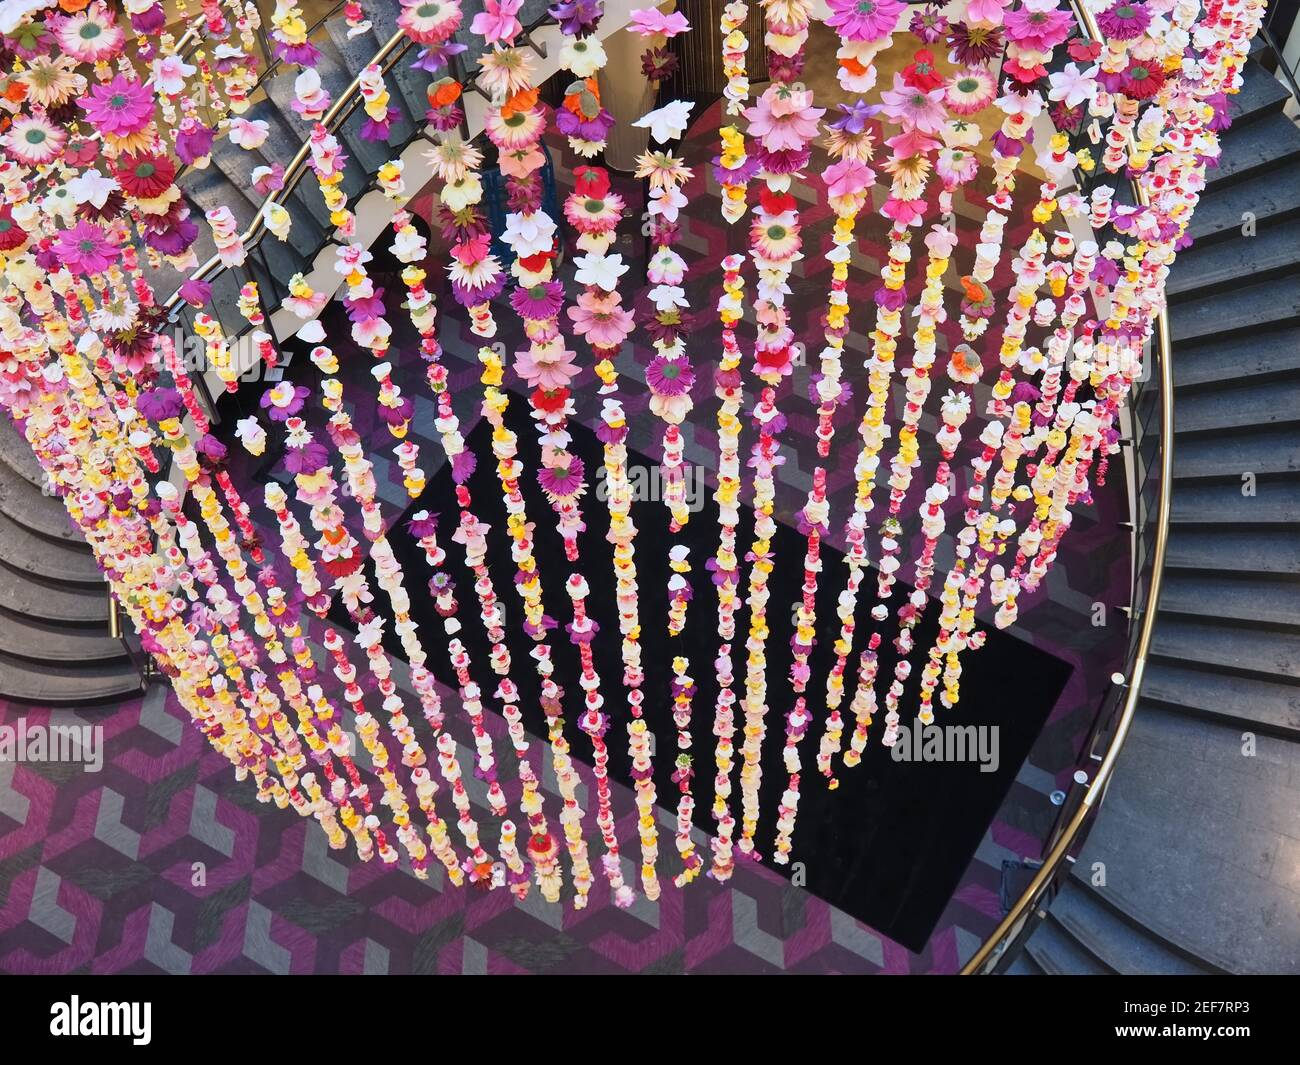 Stairway with flower decoration Inside the famous mall Schadow Arkaden in Duesseldorf Stock Photo